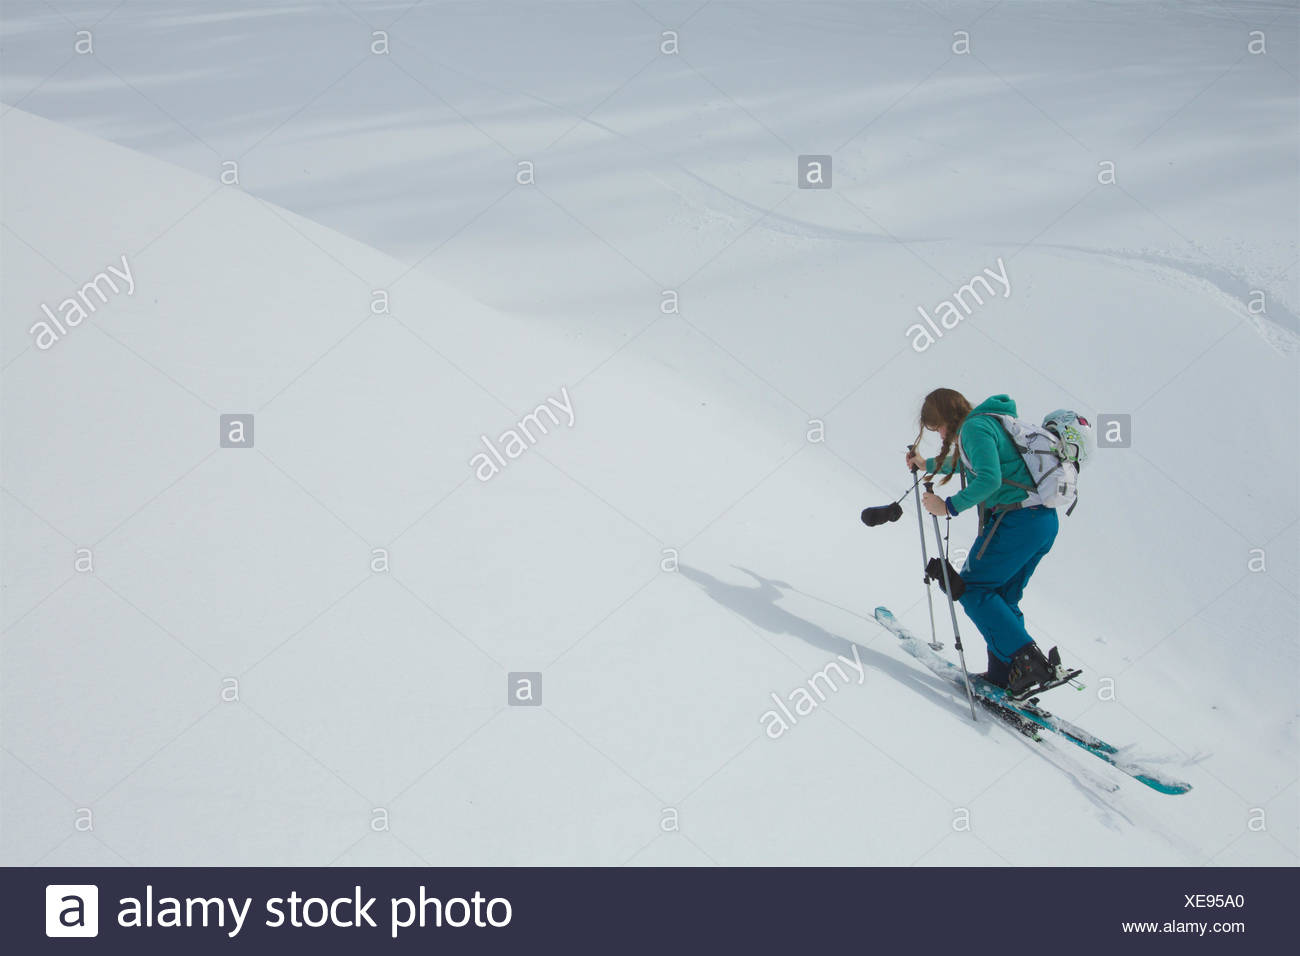 Teen girl skiing uphill with skins on her skis. - Stock Image